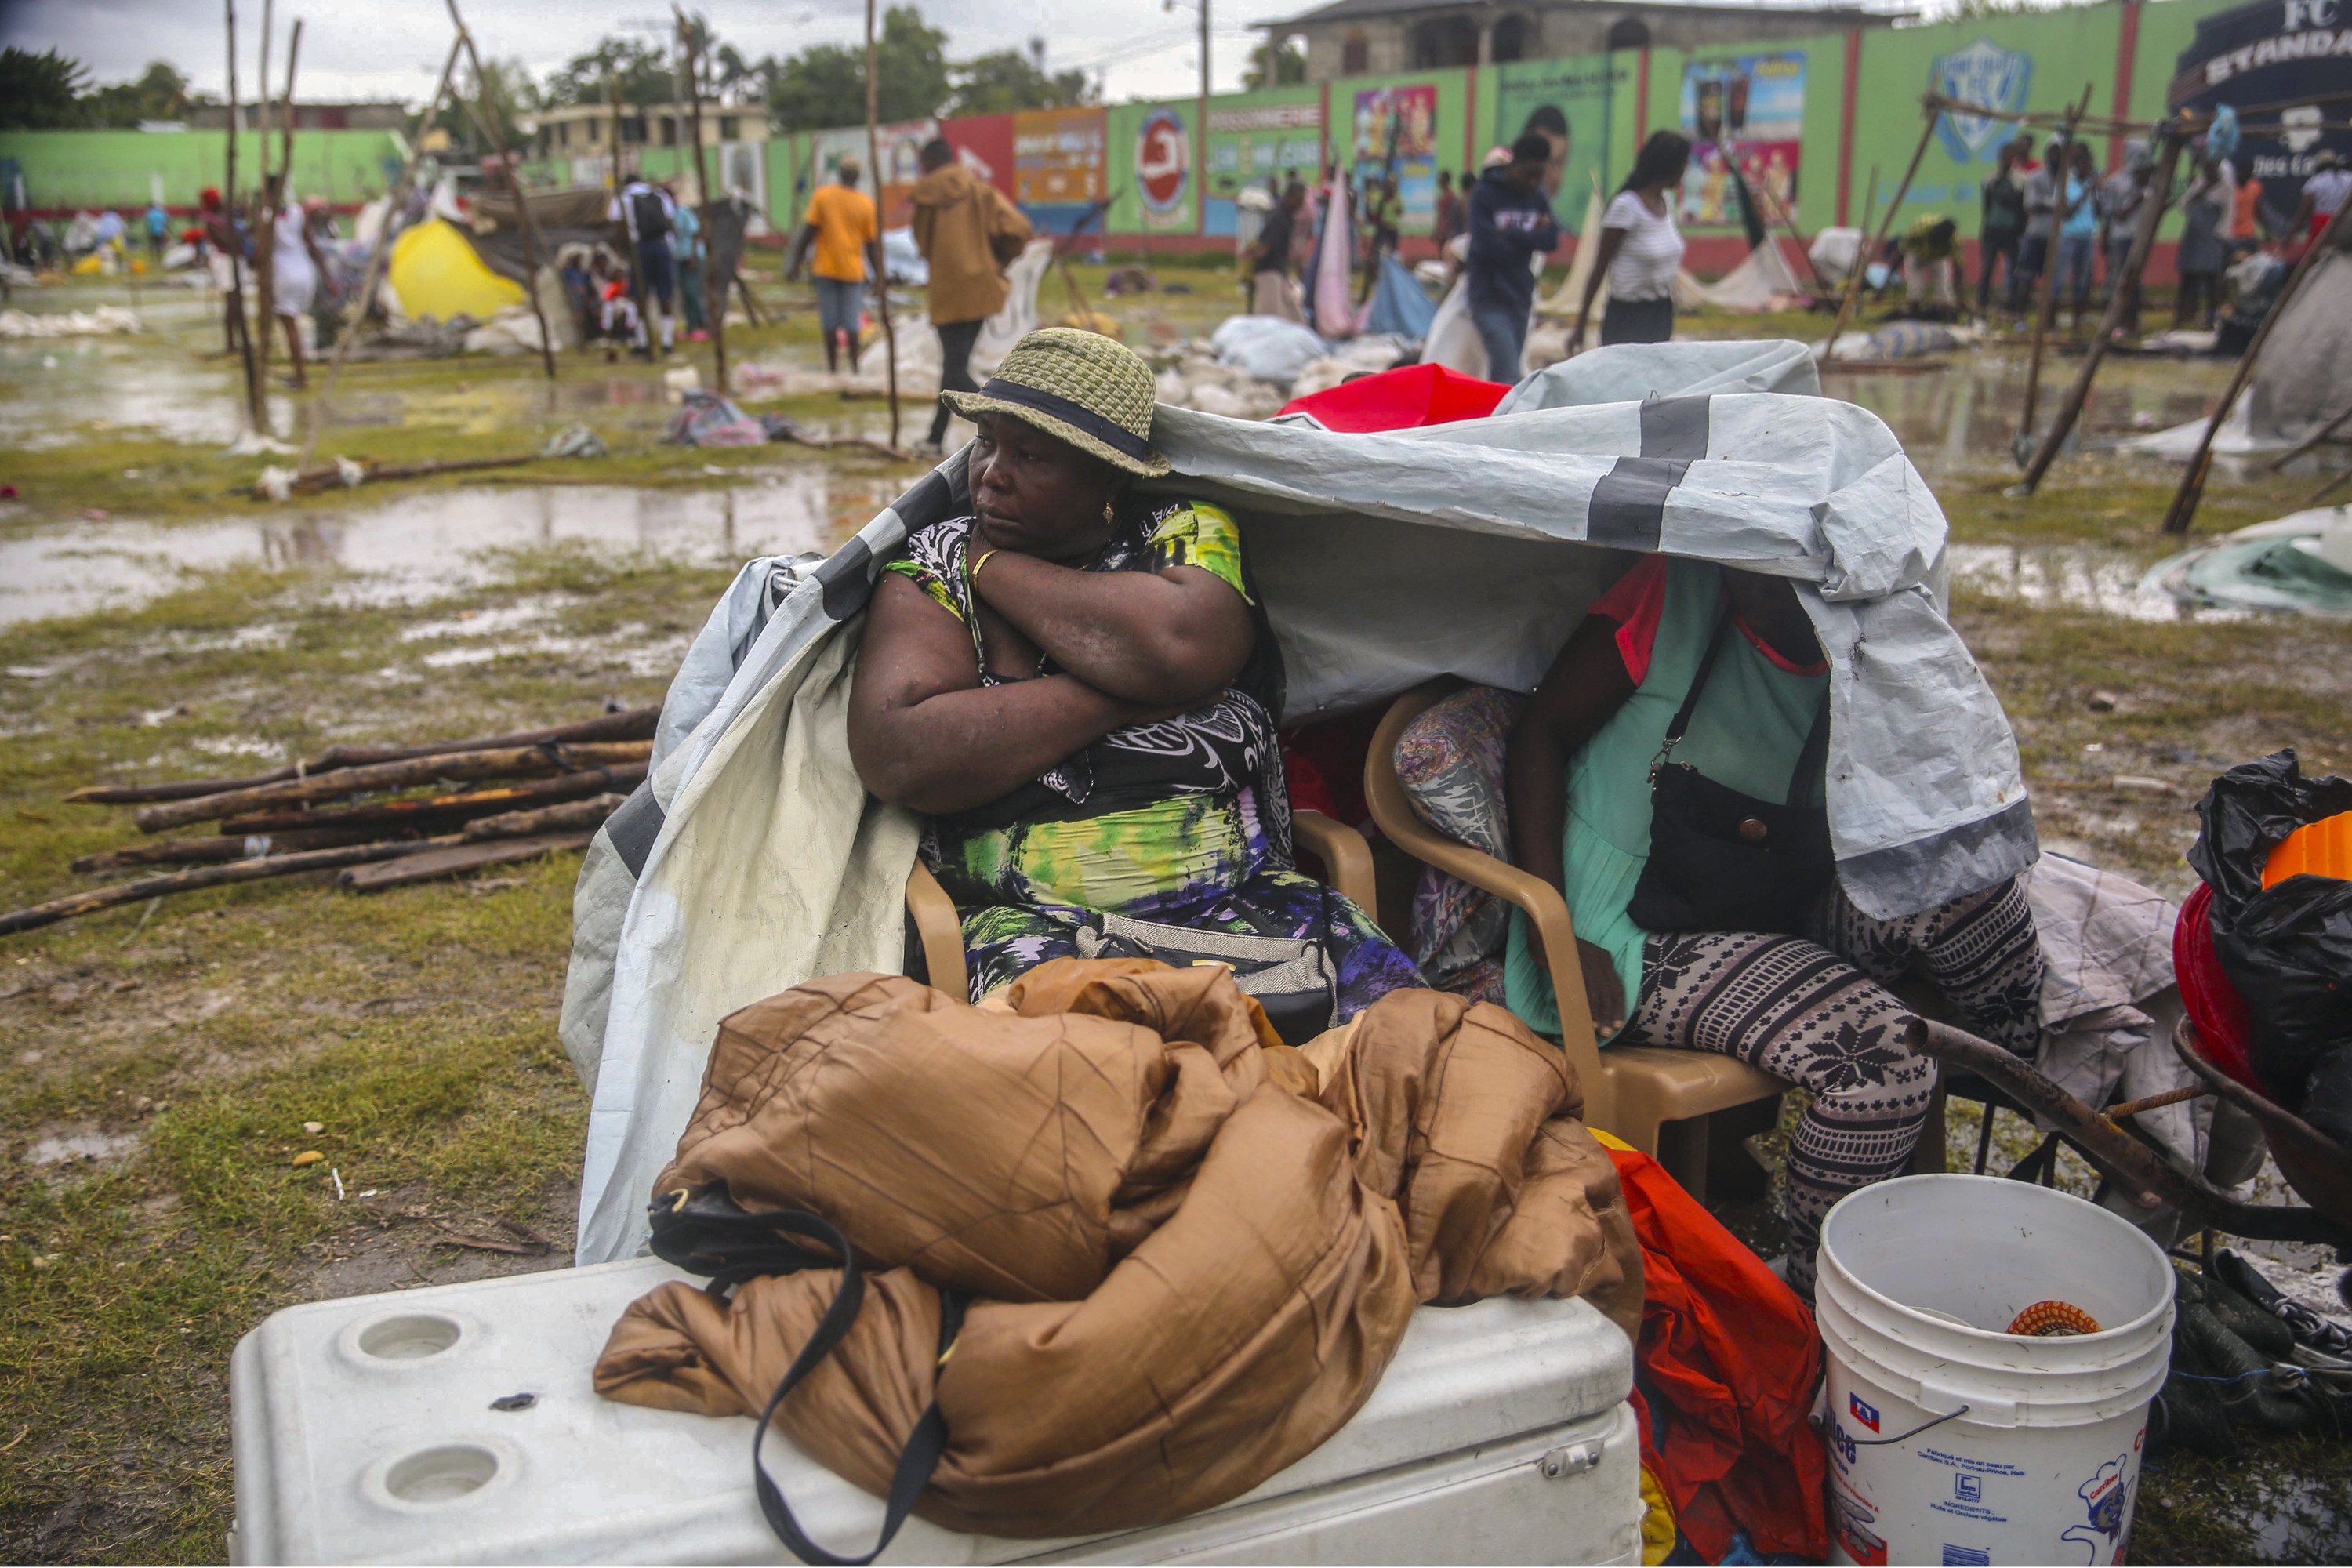 A woman sits outside under a tarp, surrounded by belongings as it rains